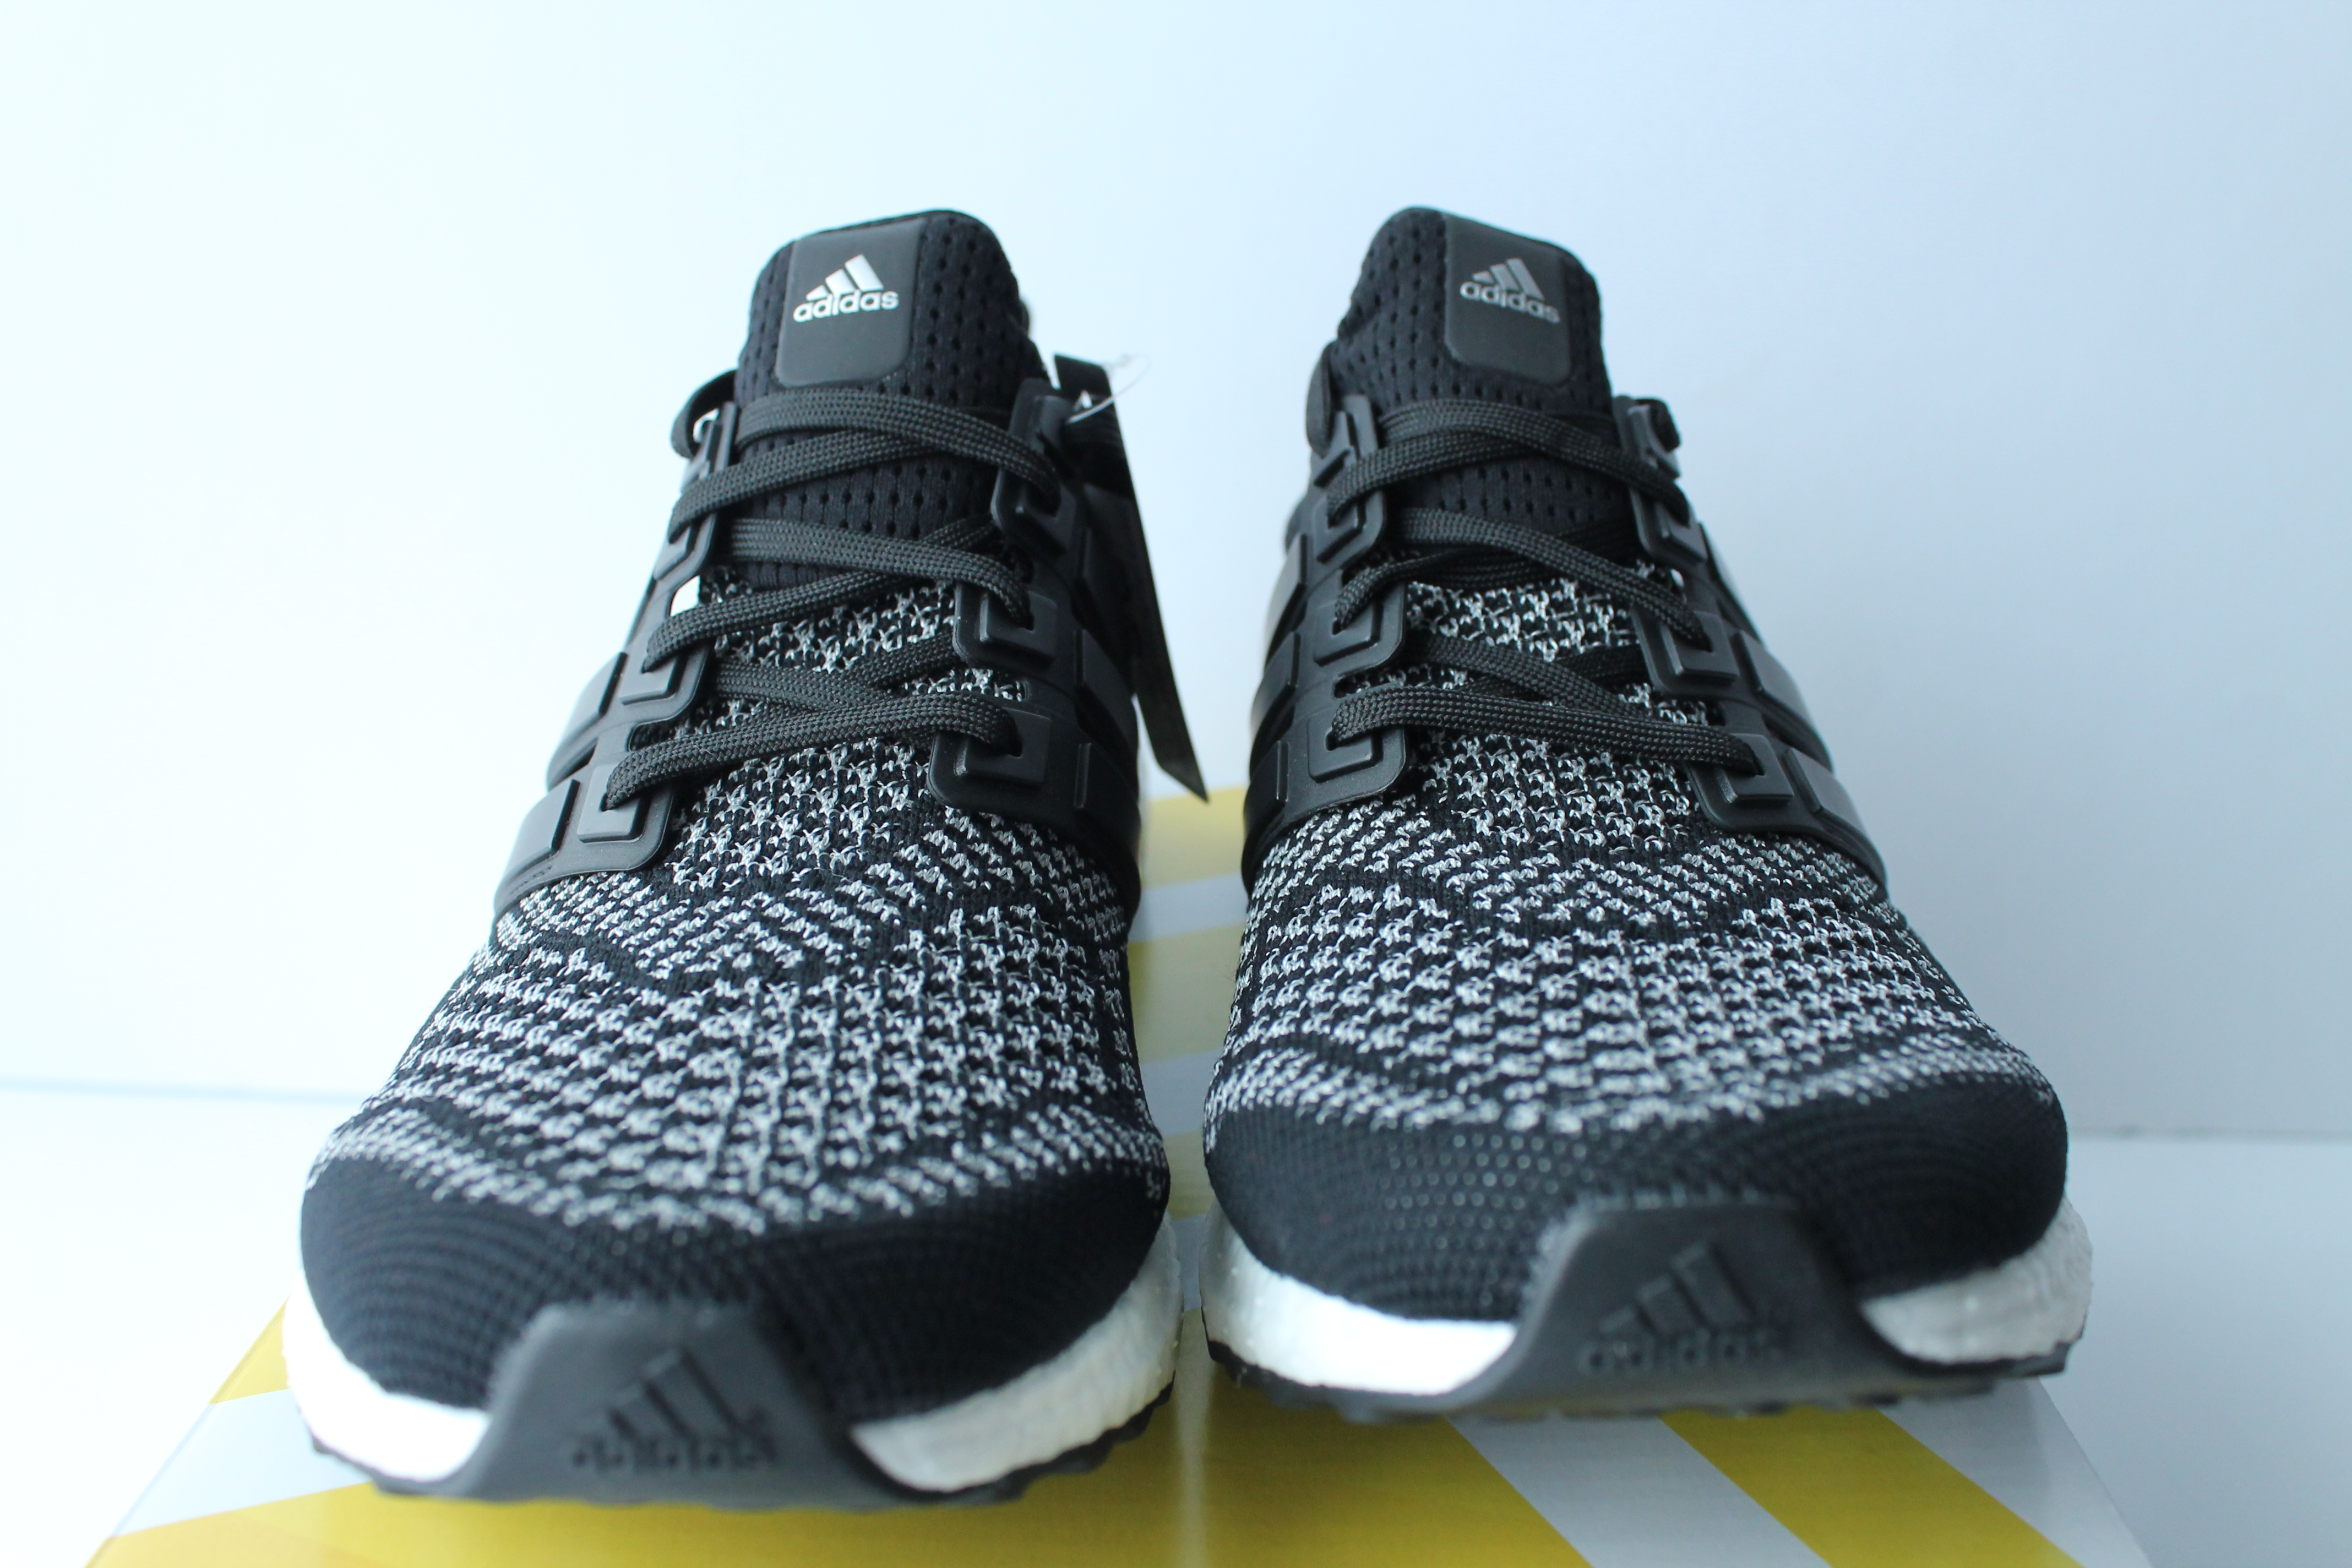 Yeezy Mens Shoes